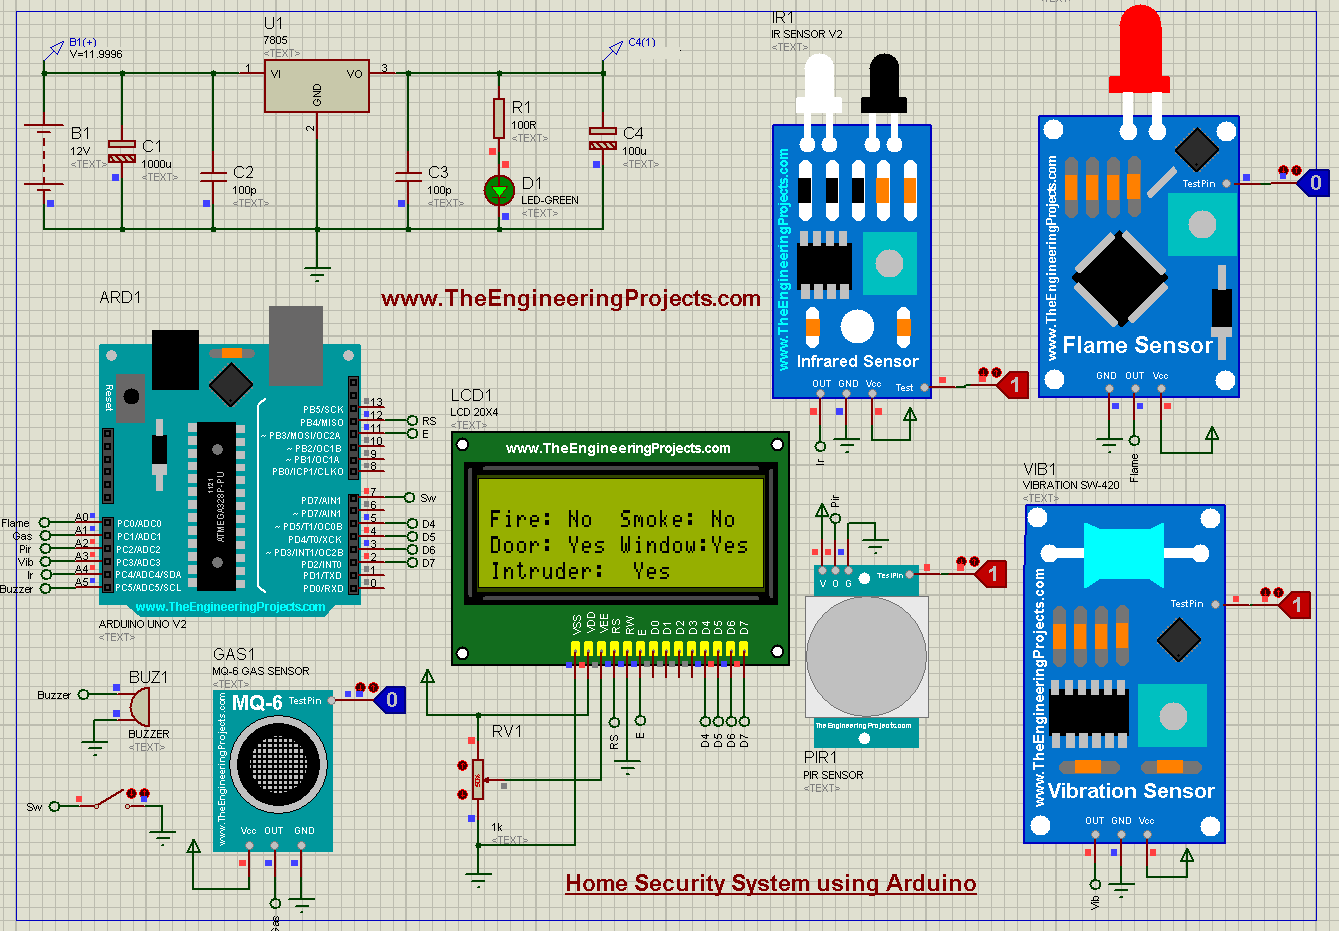 Home Security System using Arduino, Home Security System, Home Security System Arduino, arduino Home Security System, Home Security System simulation, Home Security System in proteus, Home Security Project, proteus simulation of home security project